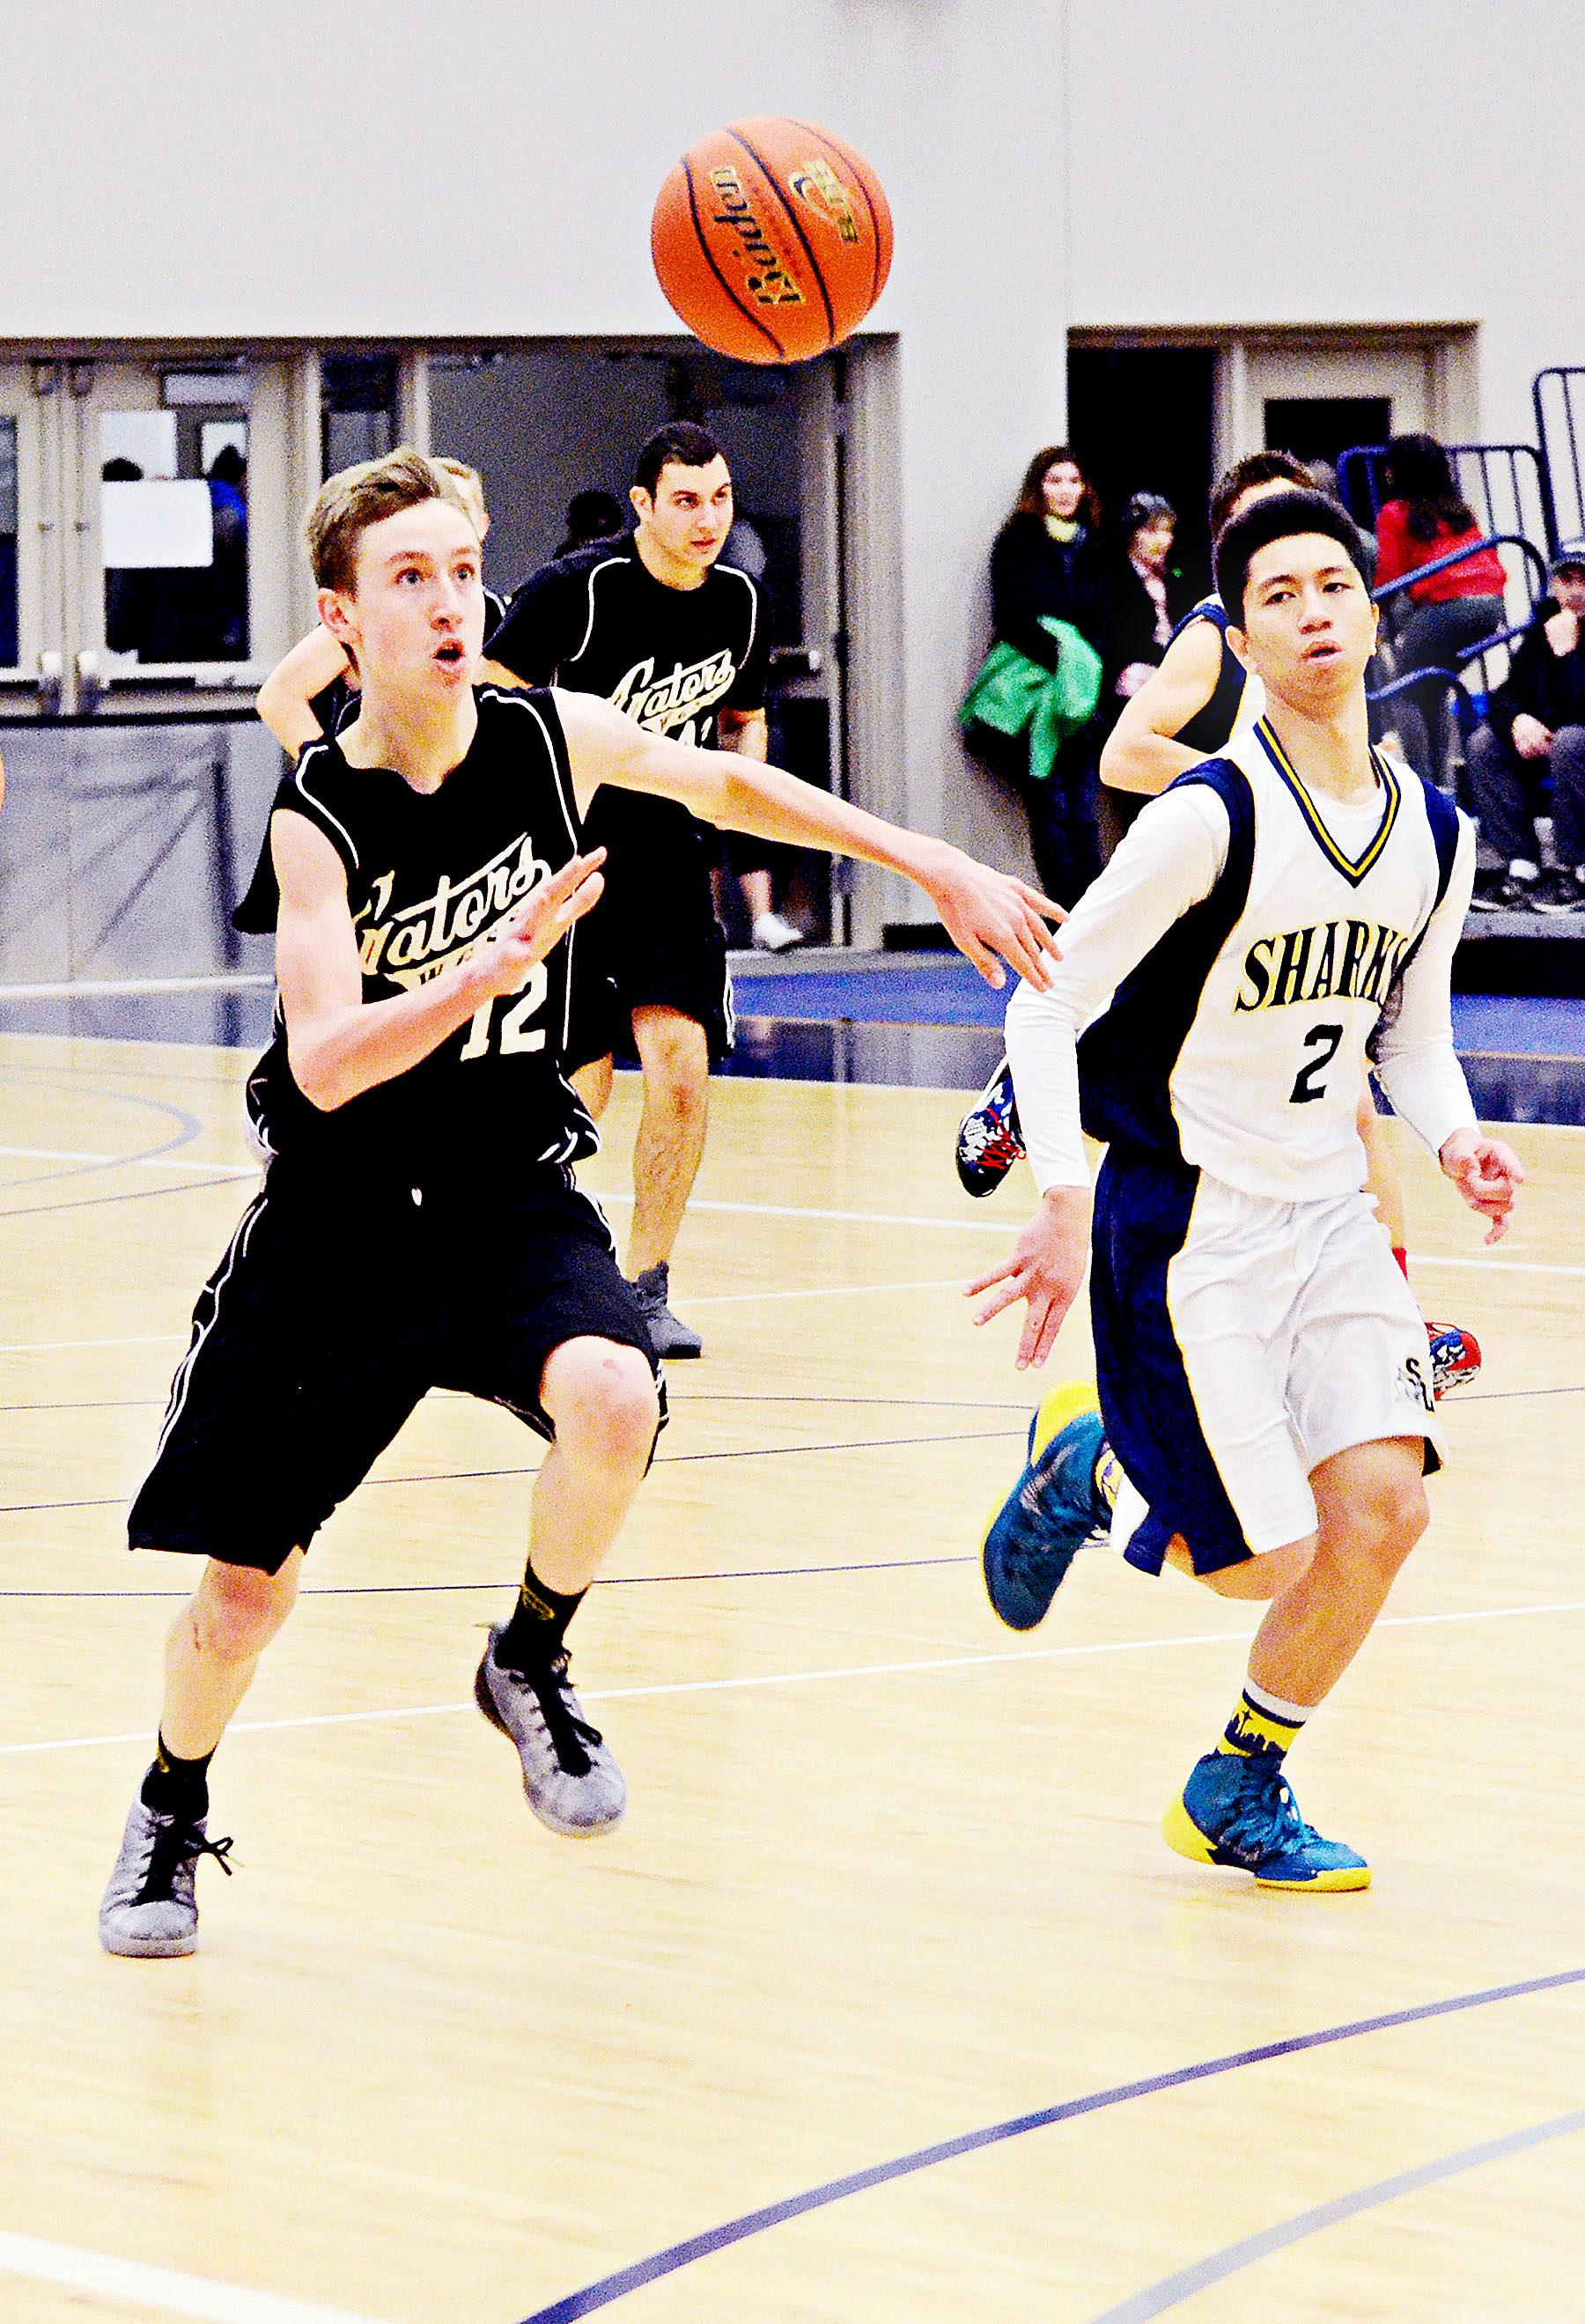 Walnut Grove hoopsters bronzed at junior provincials at Langley Events Centre